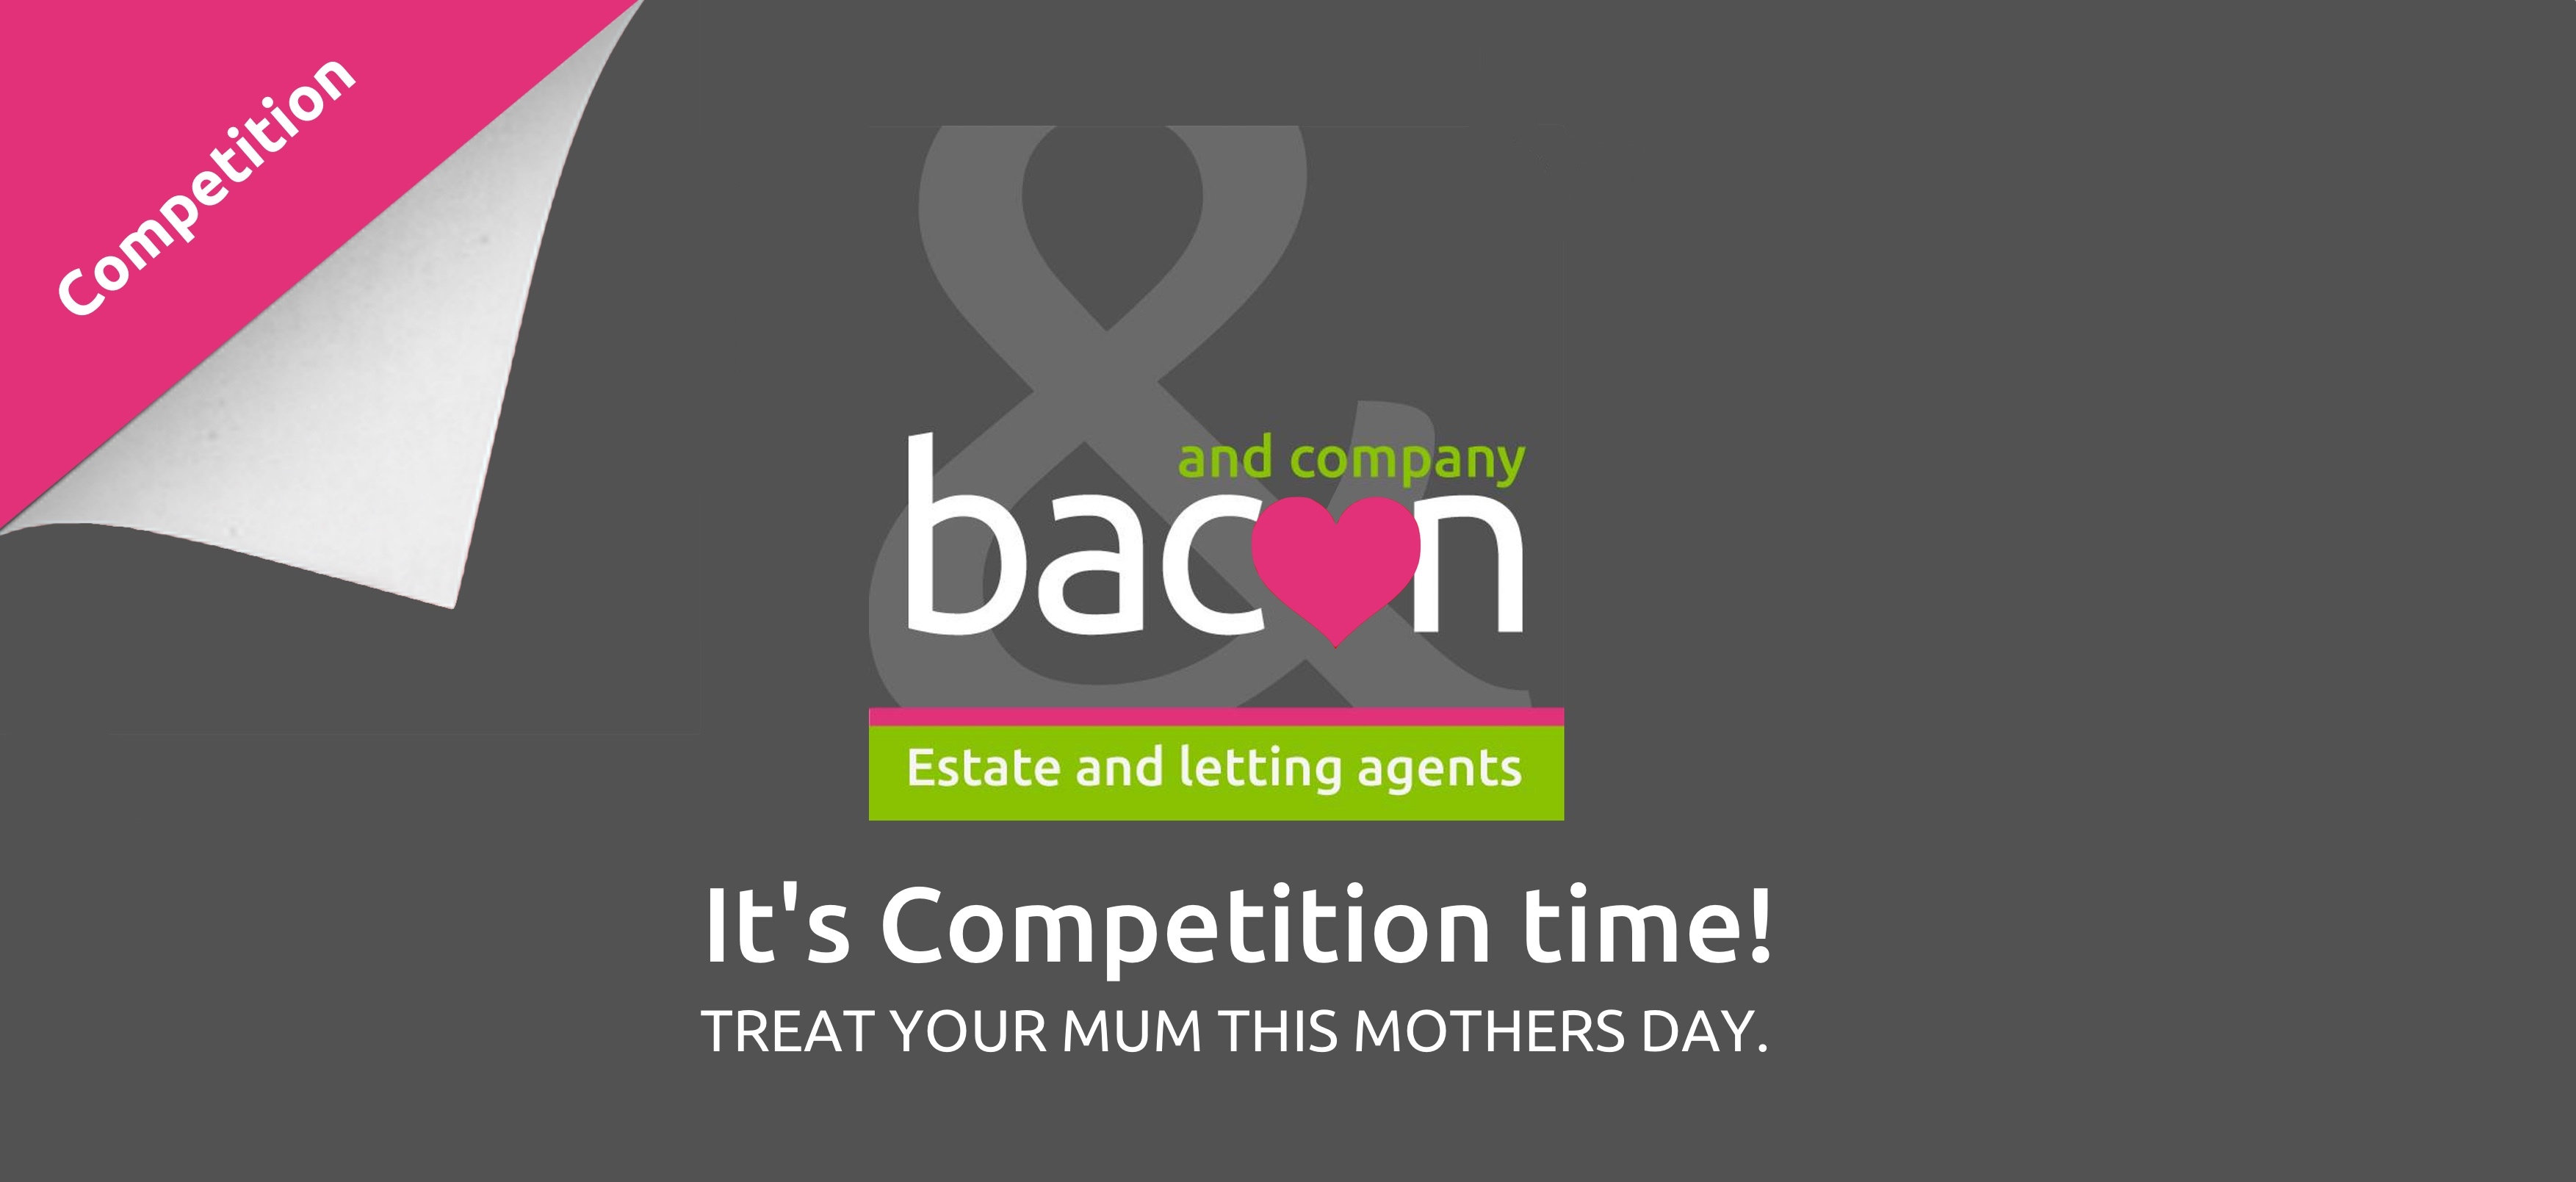 Bacon and company worthing estate agents